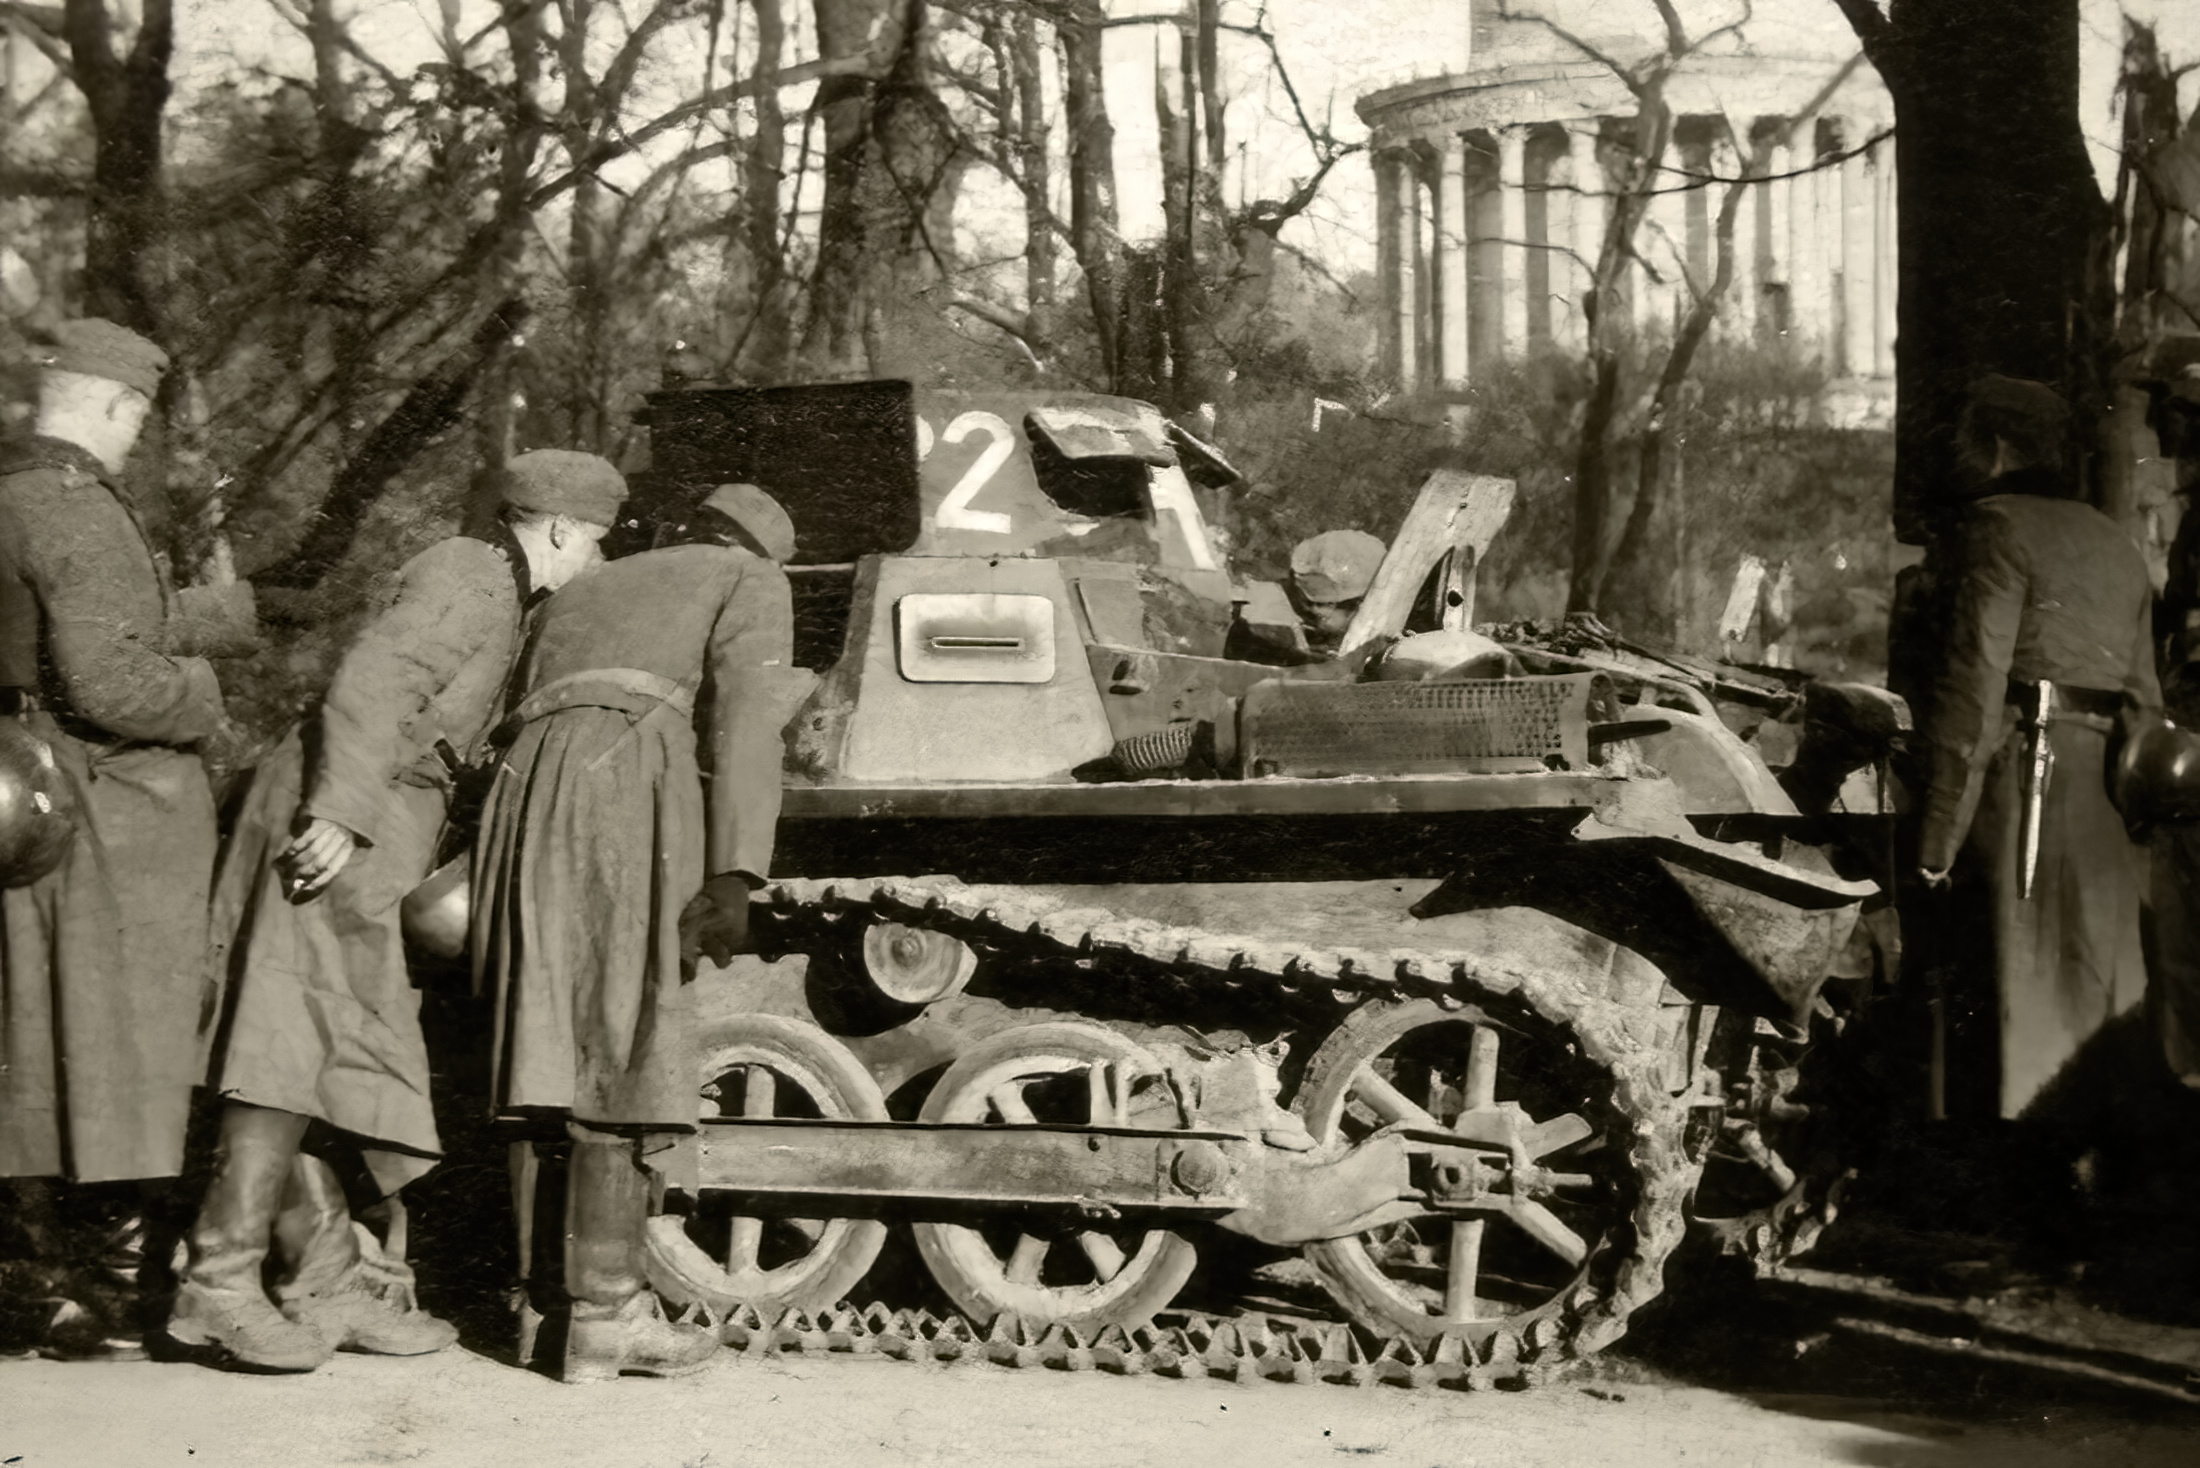 Wehrmacht Panzer I Ausf.B PzKpfw 1 with German troops France 1940 ebay 02